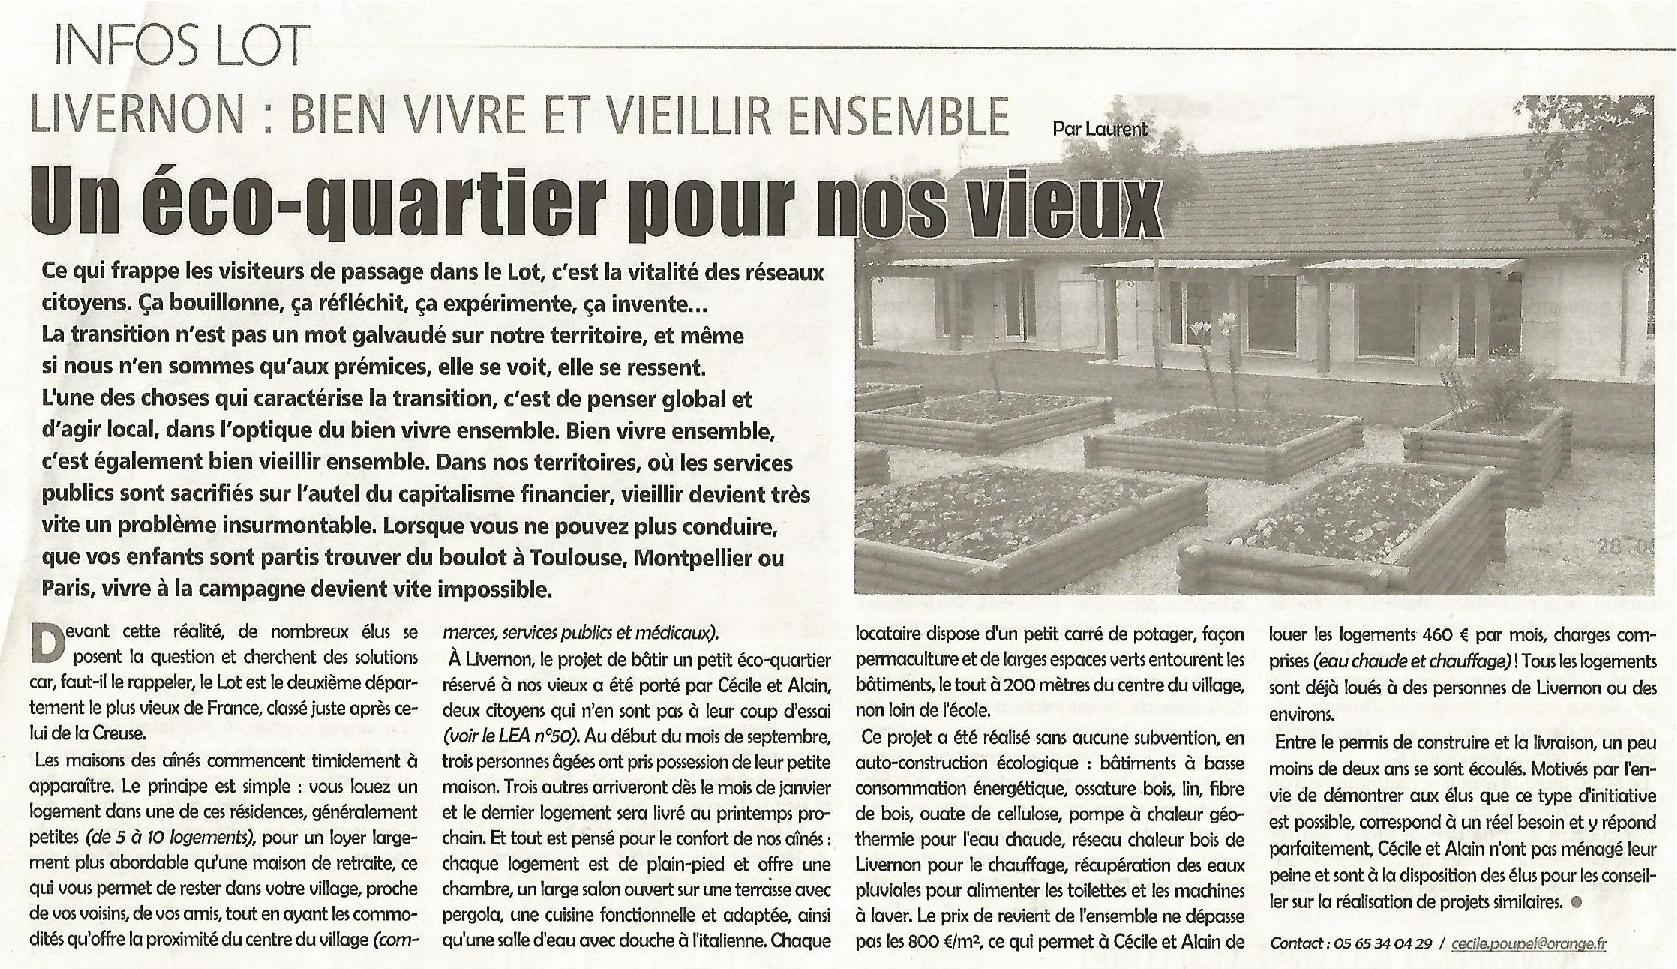 Site maison des aines article lea septembre 2014